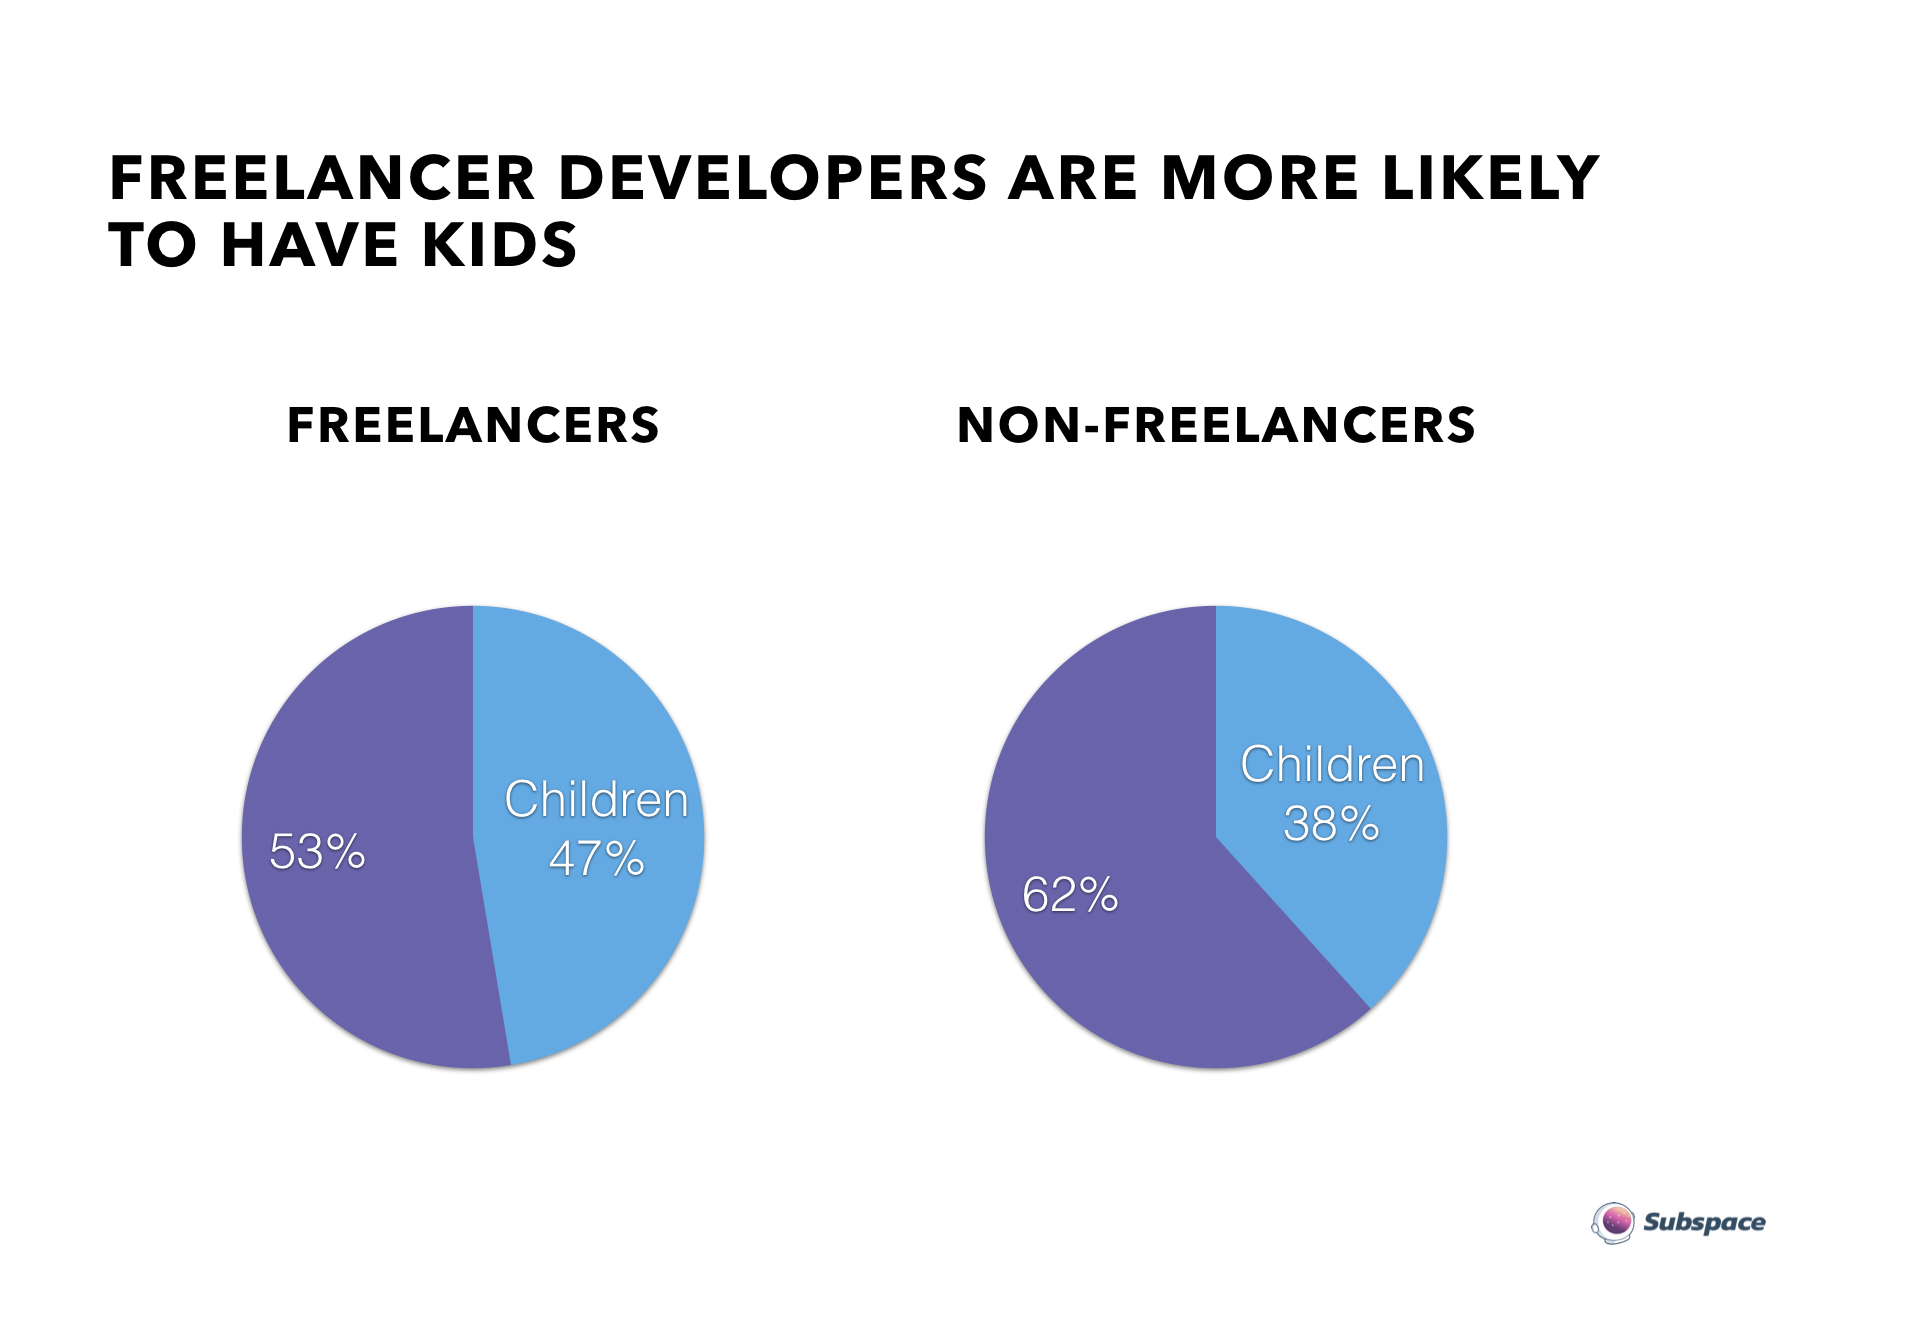 47% have children - Far from the trope of sandal-clad twenty-somethings coding on a beach, almost half of freelancers are family men. (Yes, men. Ninety-three percent are men, compared to only 91% of non-freelancers.)